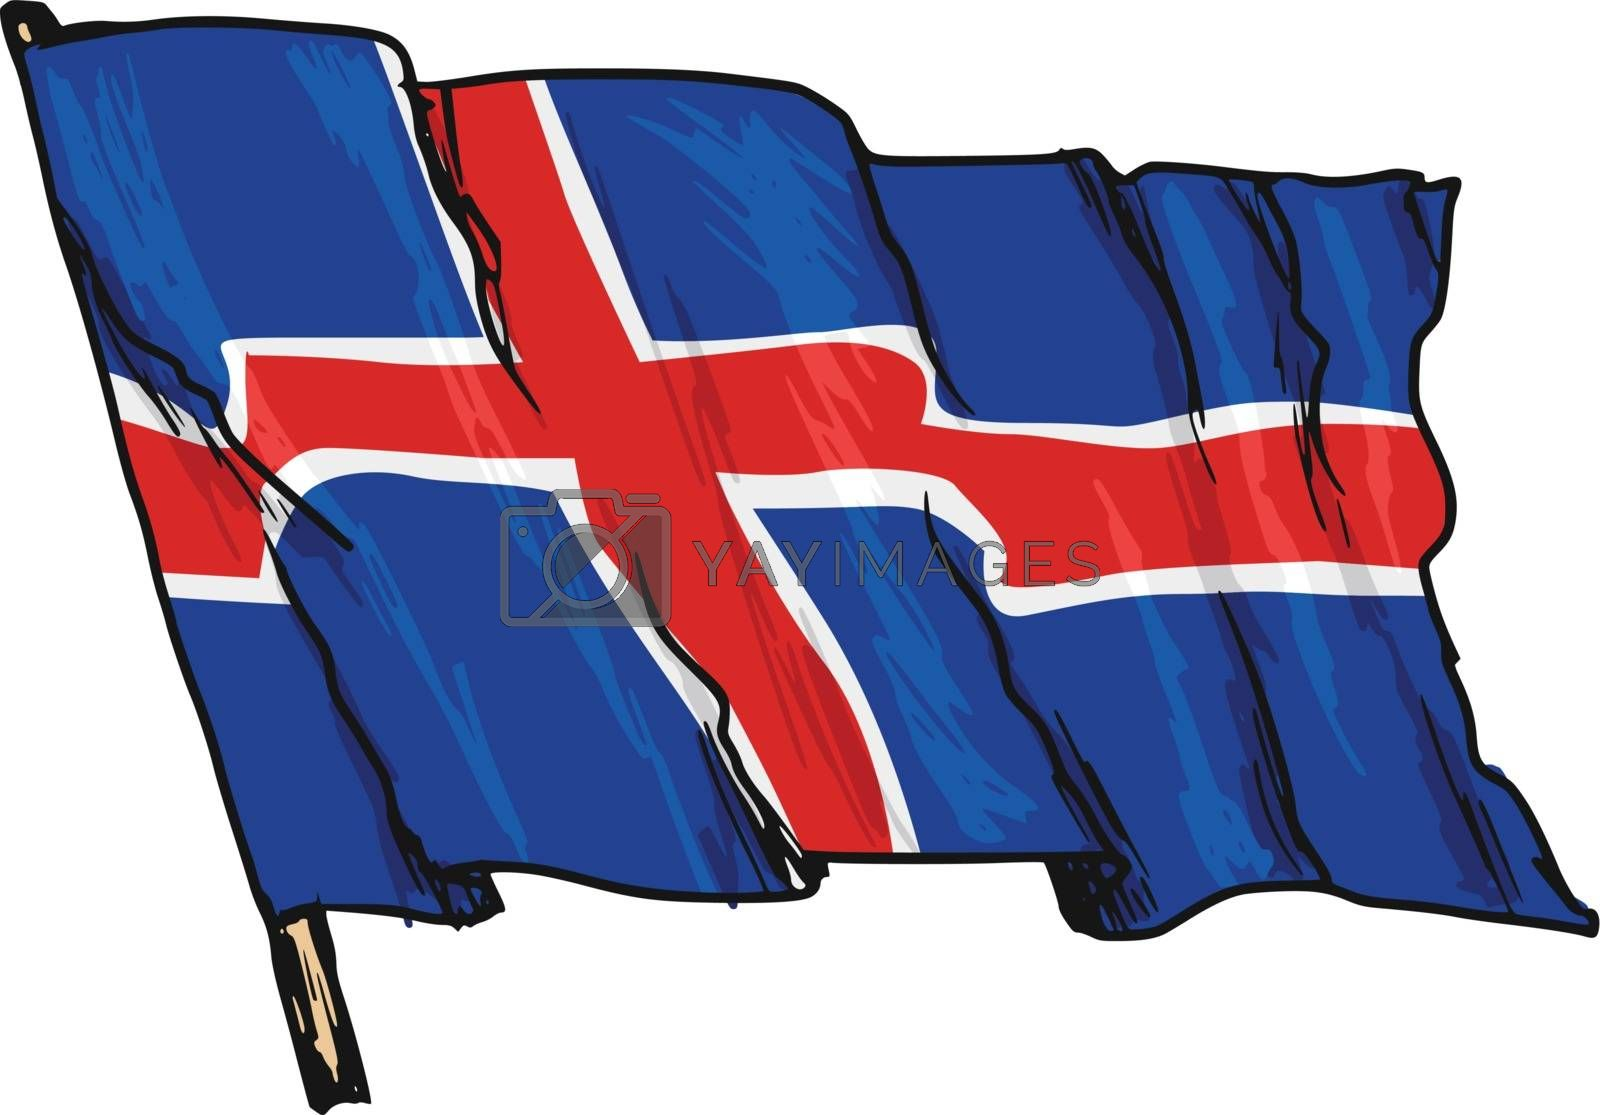 flag of Iceland by Perysty